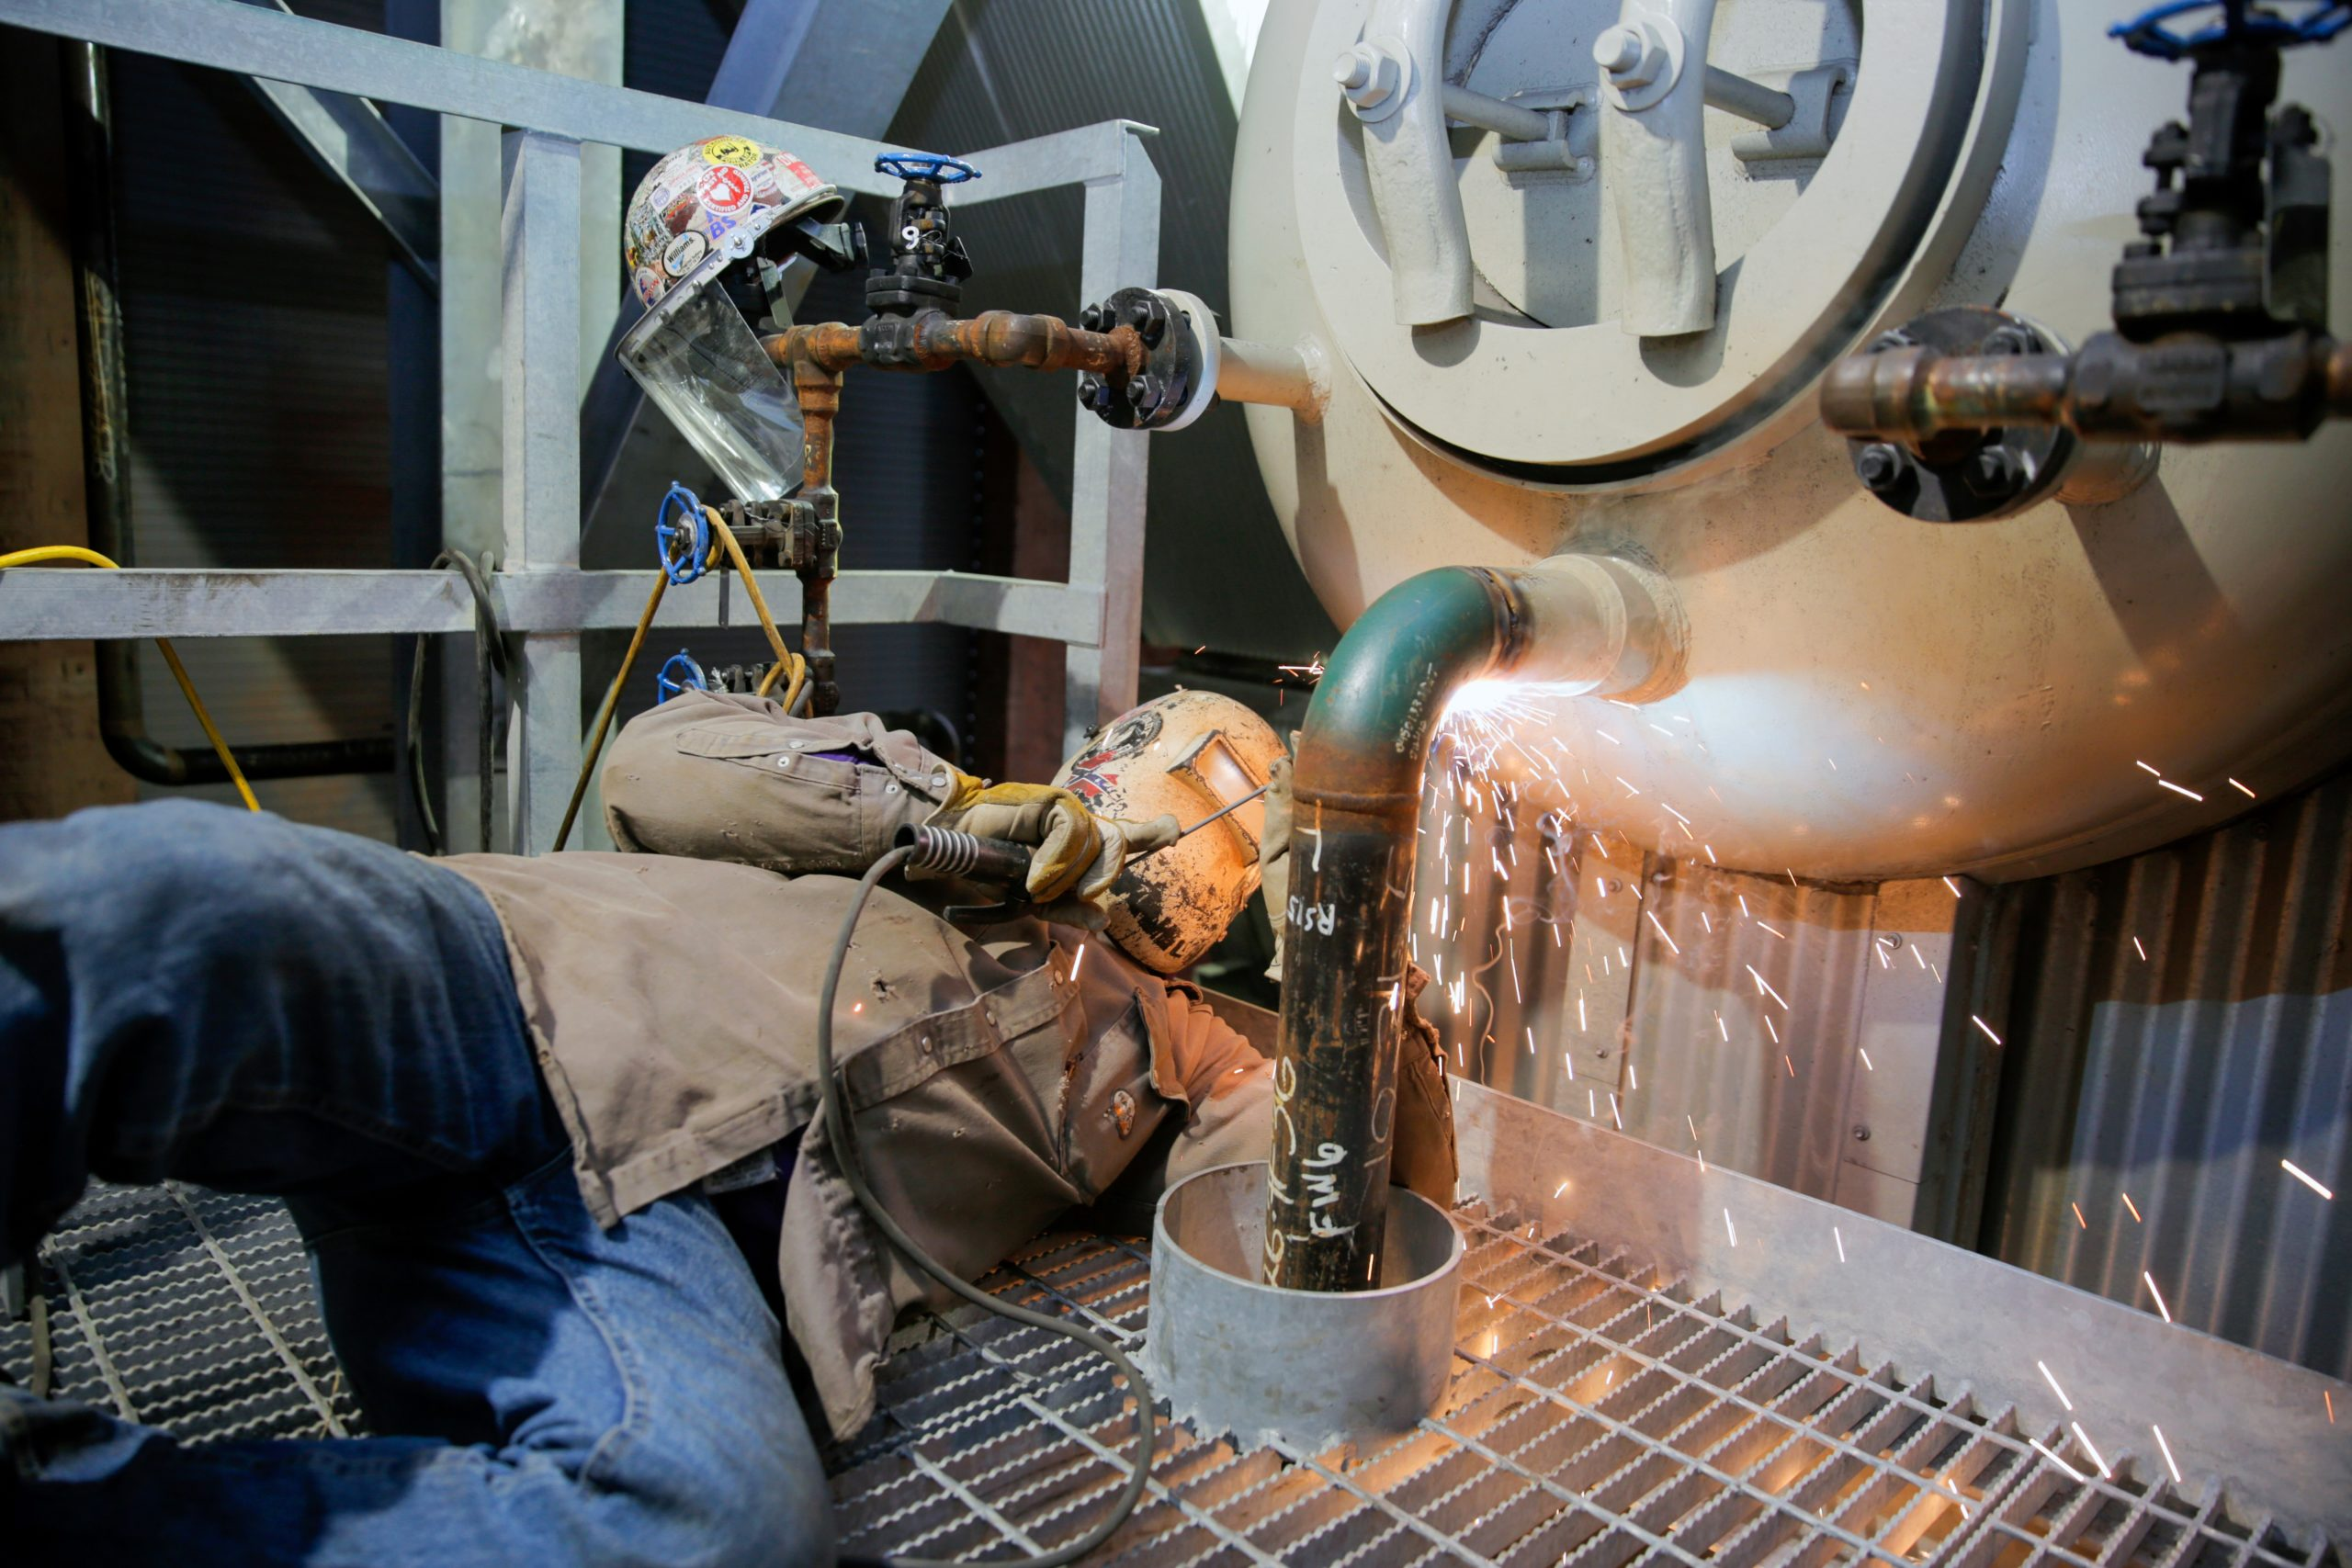 Pipe fitters weld the economizer, Predictive Emissions Monitoring System software, instrumentation on the boiler, steam and feed water piping, as well as the safeties before commissioning and preforming pre-start up.